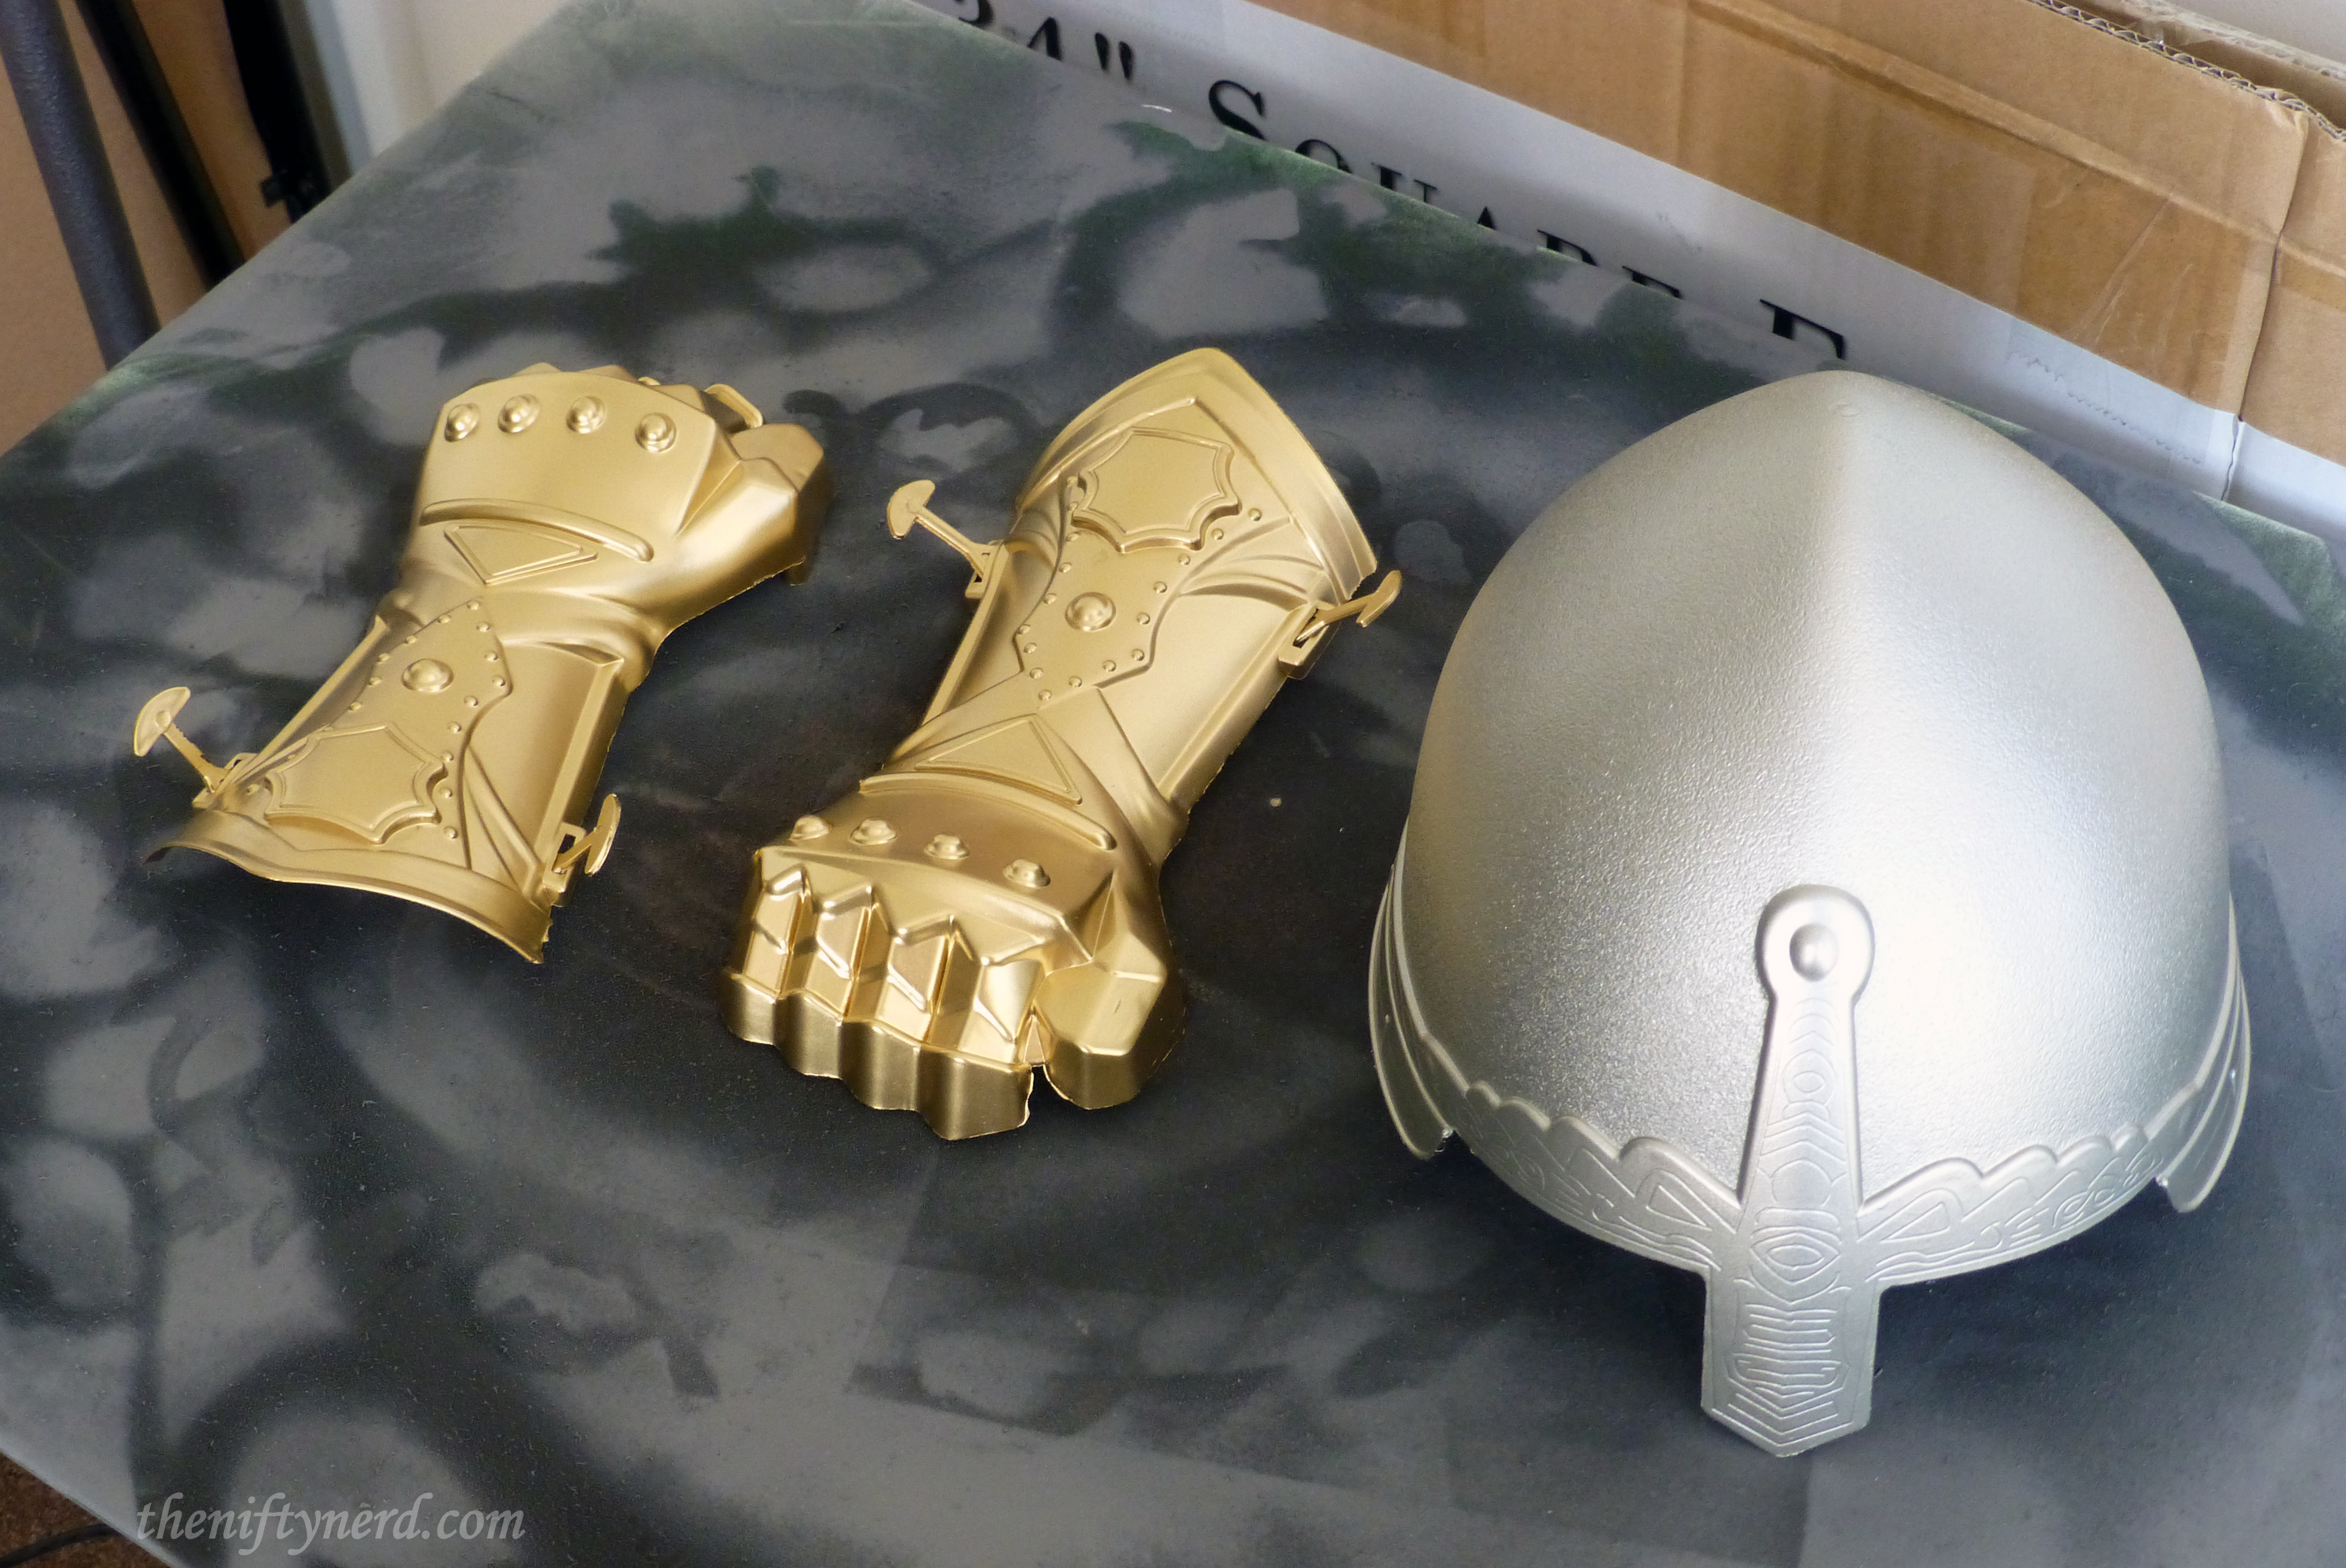 spray painted toy gauntlets and helmet